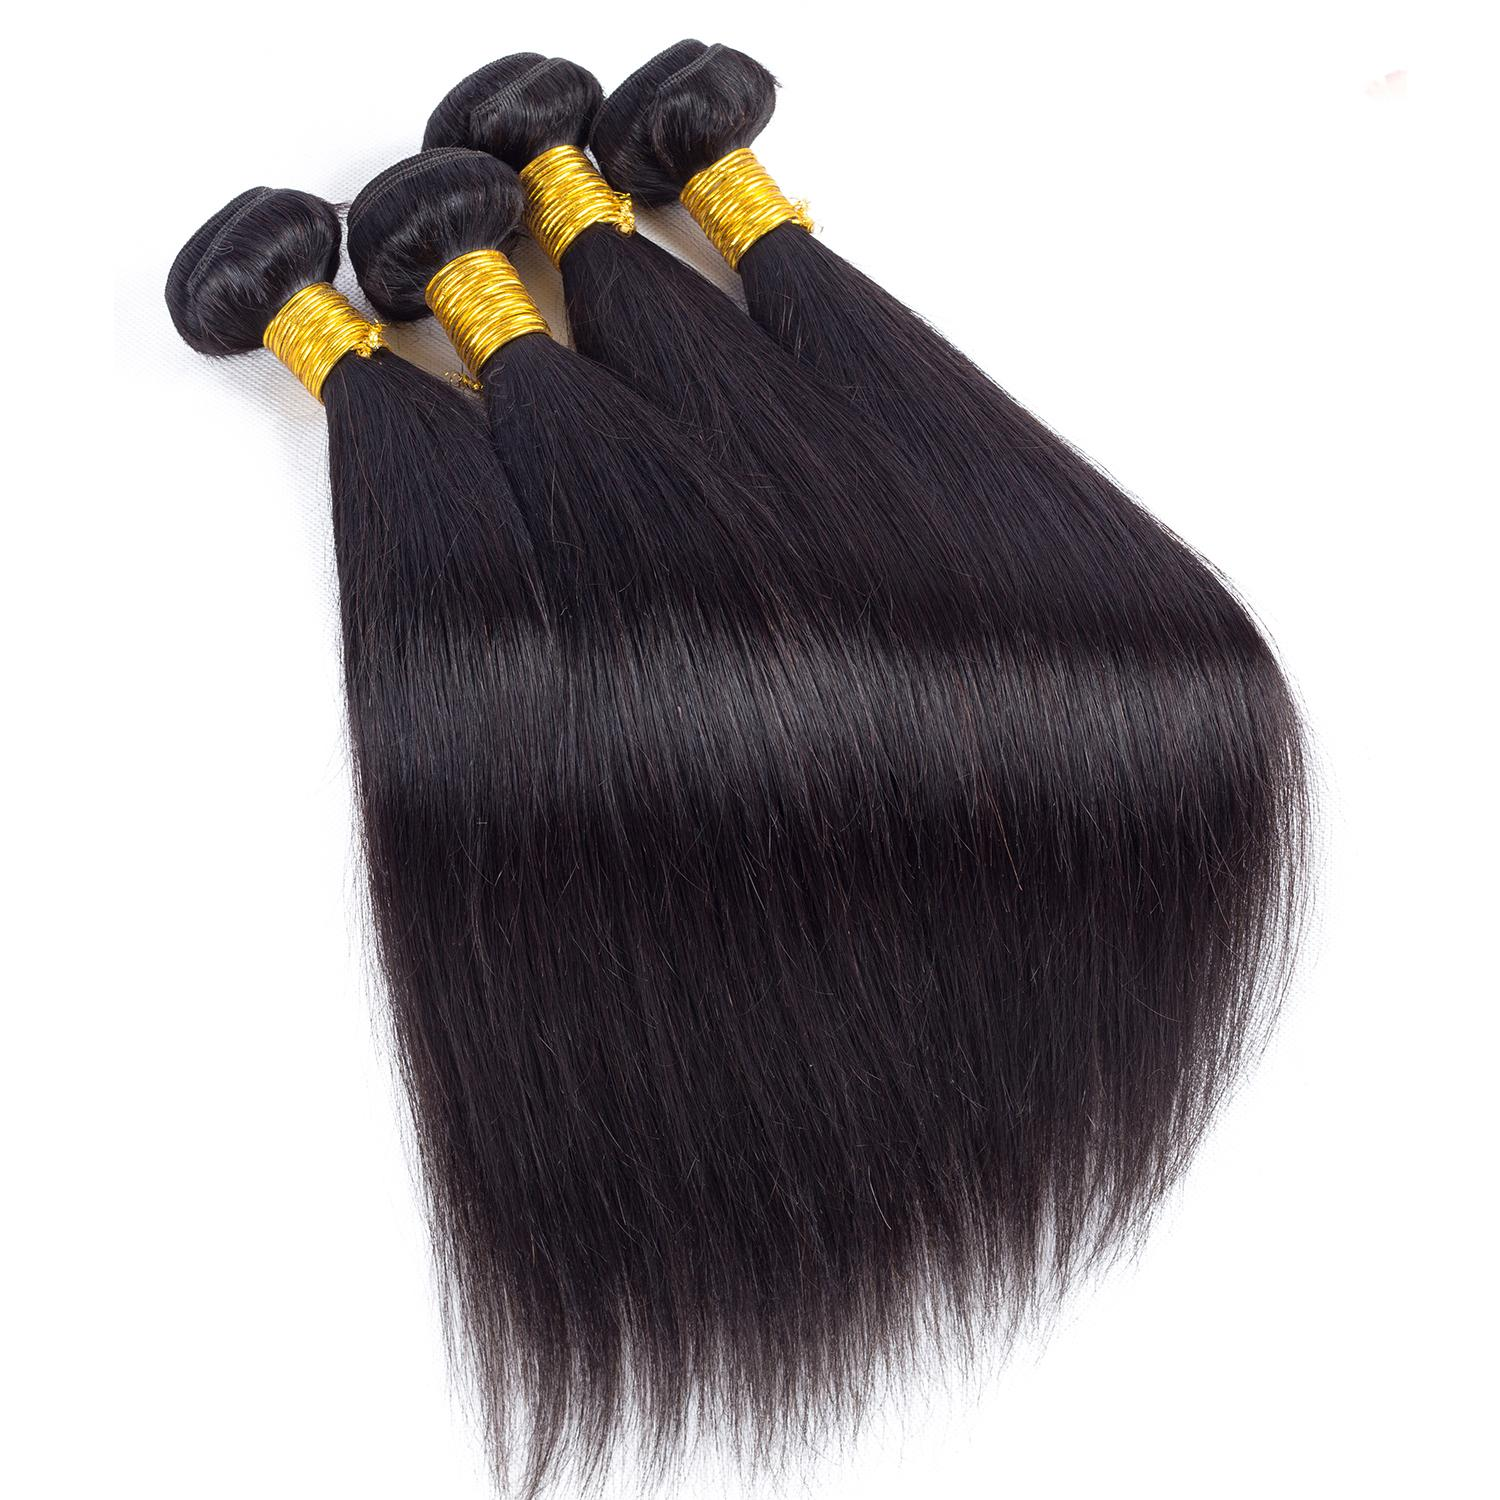 Brazilian Straight Virgin Hair Weave Bundles Peruvian Cheap Remy Human Hair Extensions Best Selling Wholesale Hair Products Free Shipping